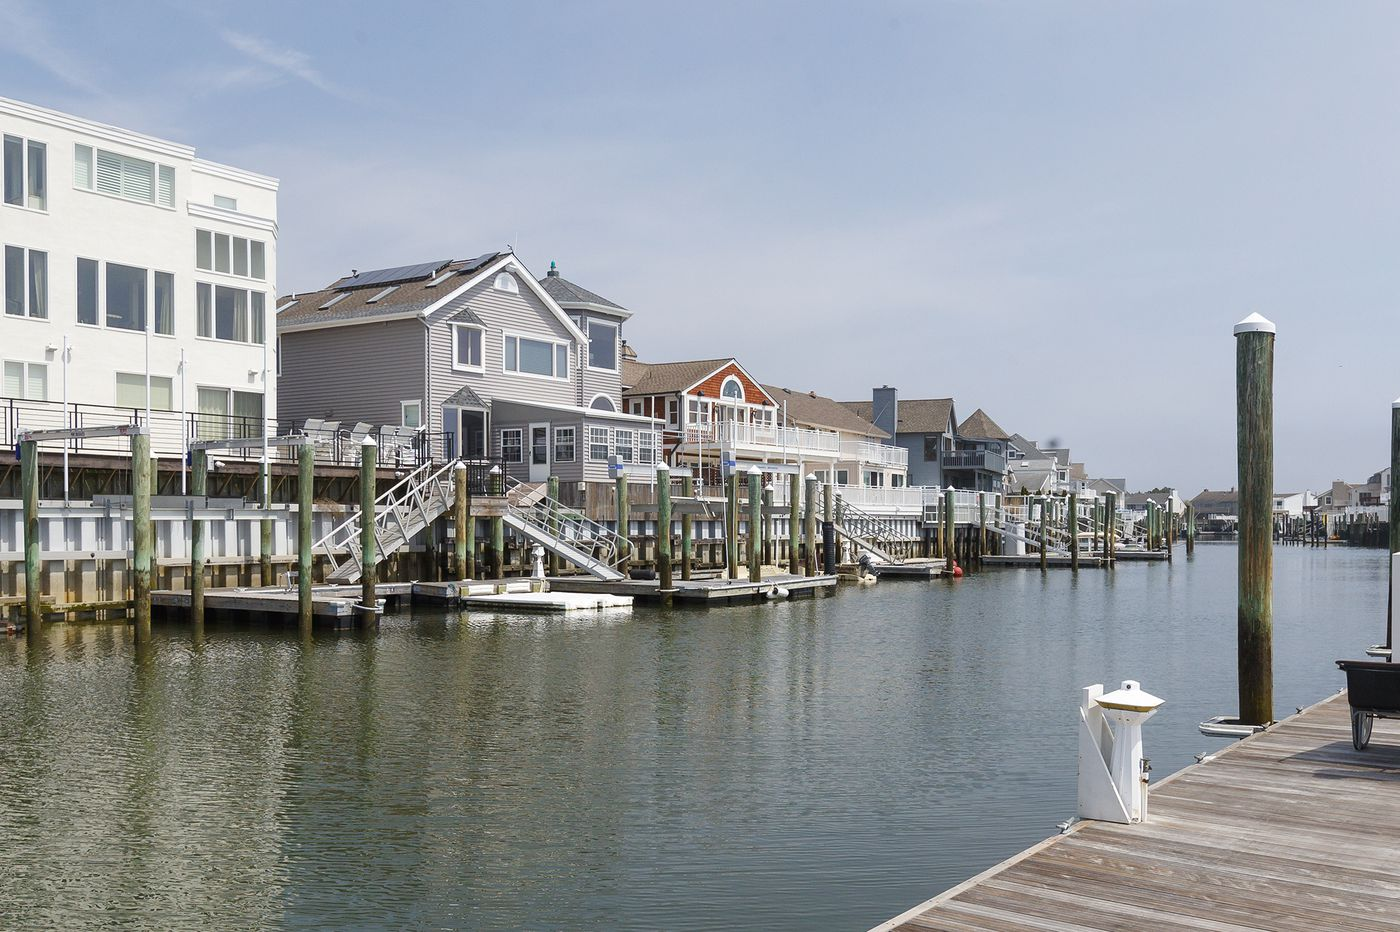 Shore community wants to secede from Egg Harbor Township and join Longport. But does Longport want them?